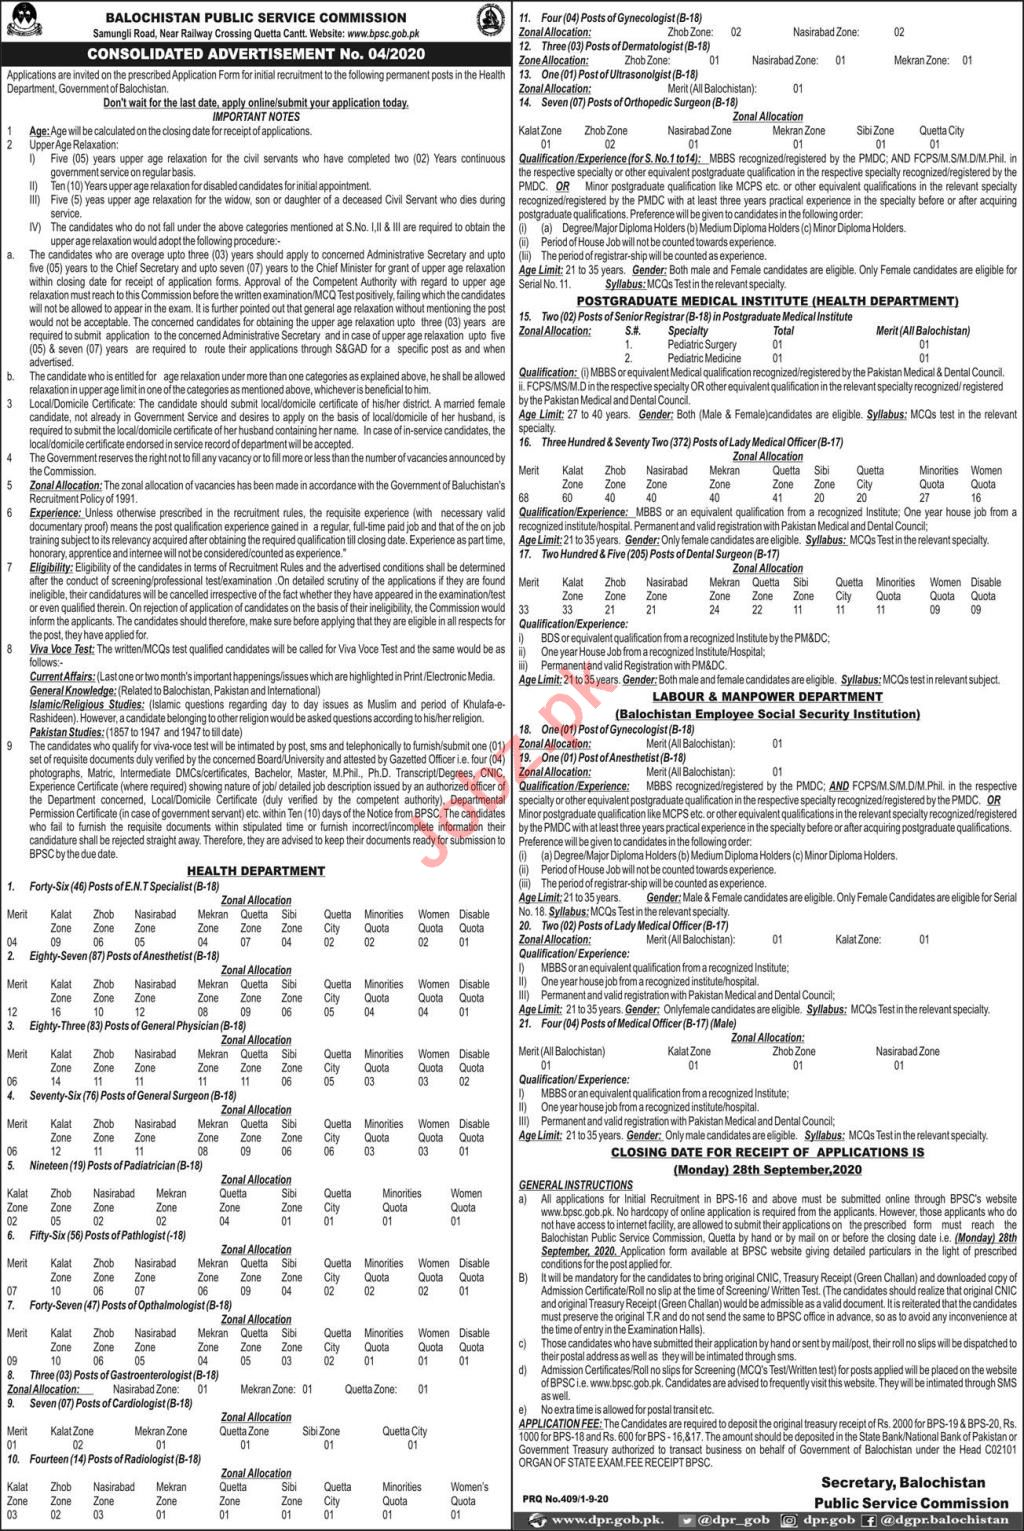 BPSC Health Department Jobs 2020 for Medical Officers